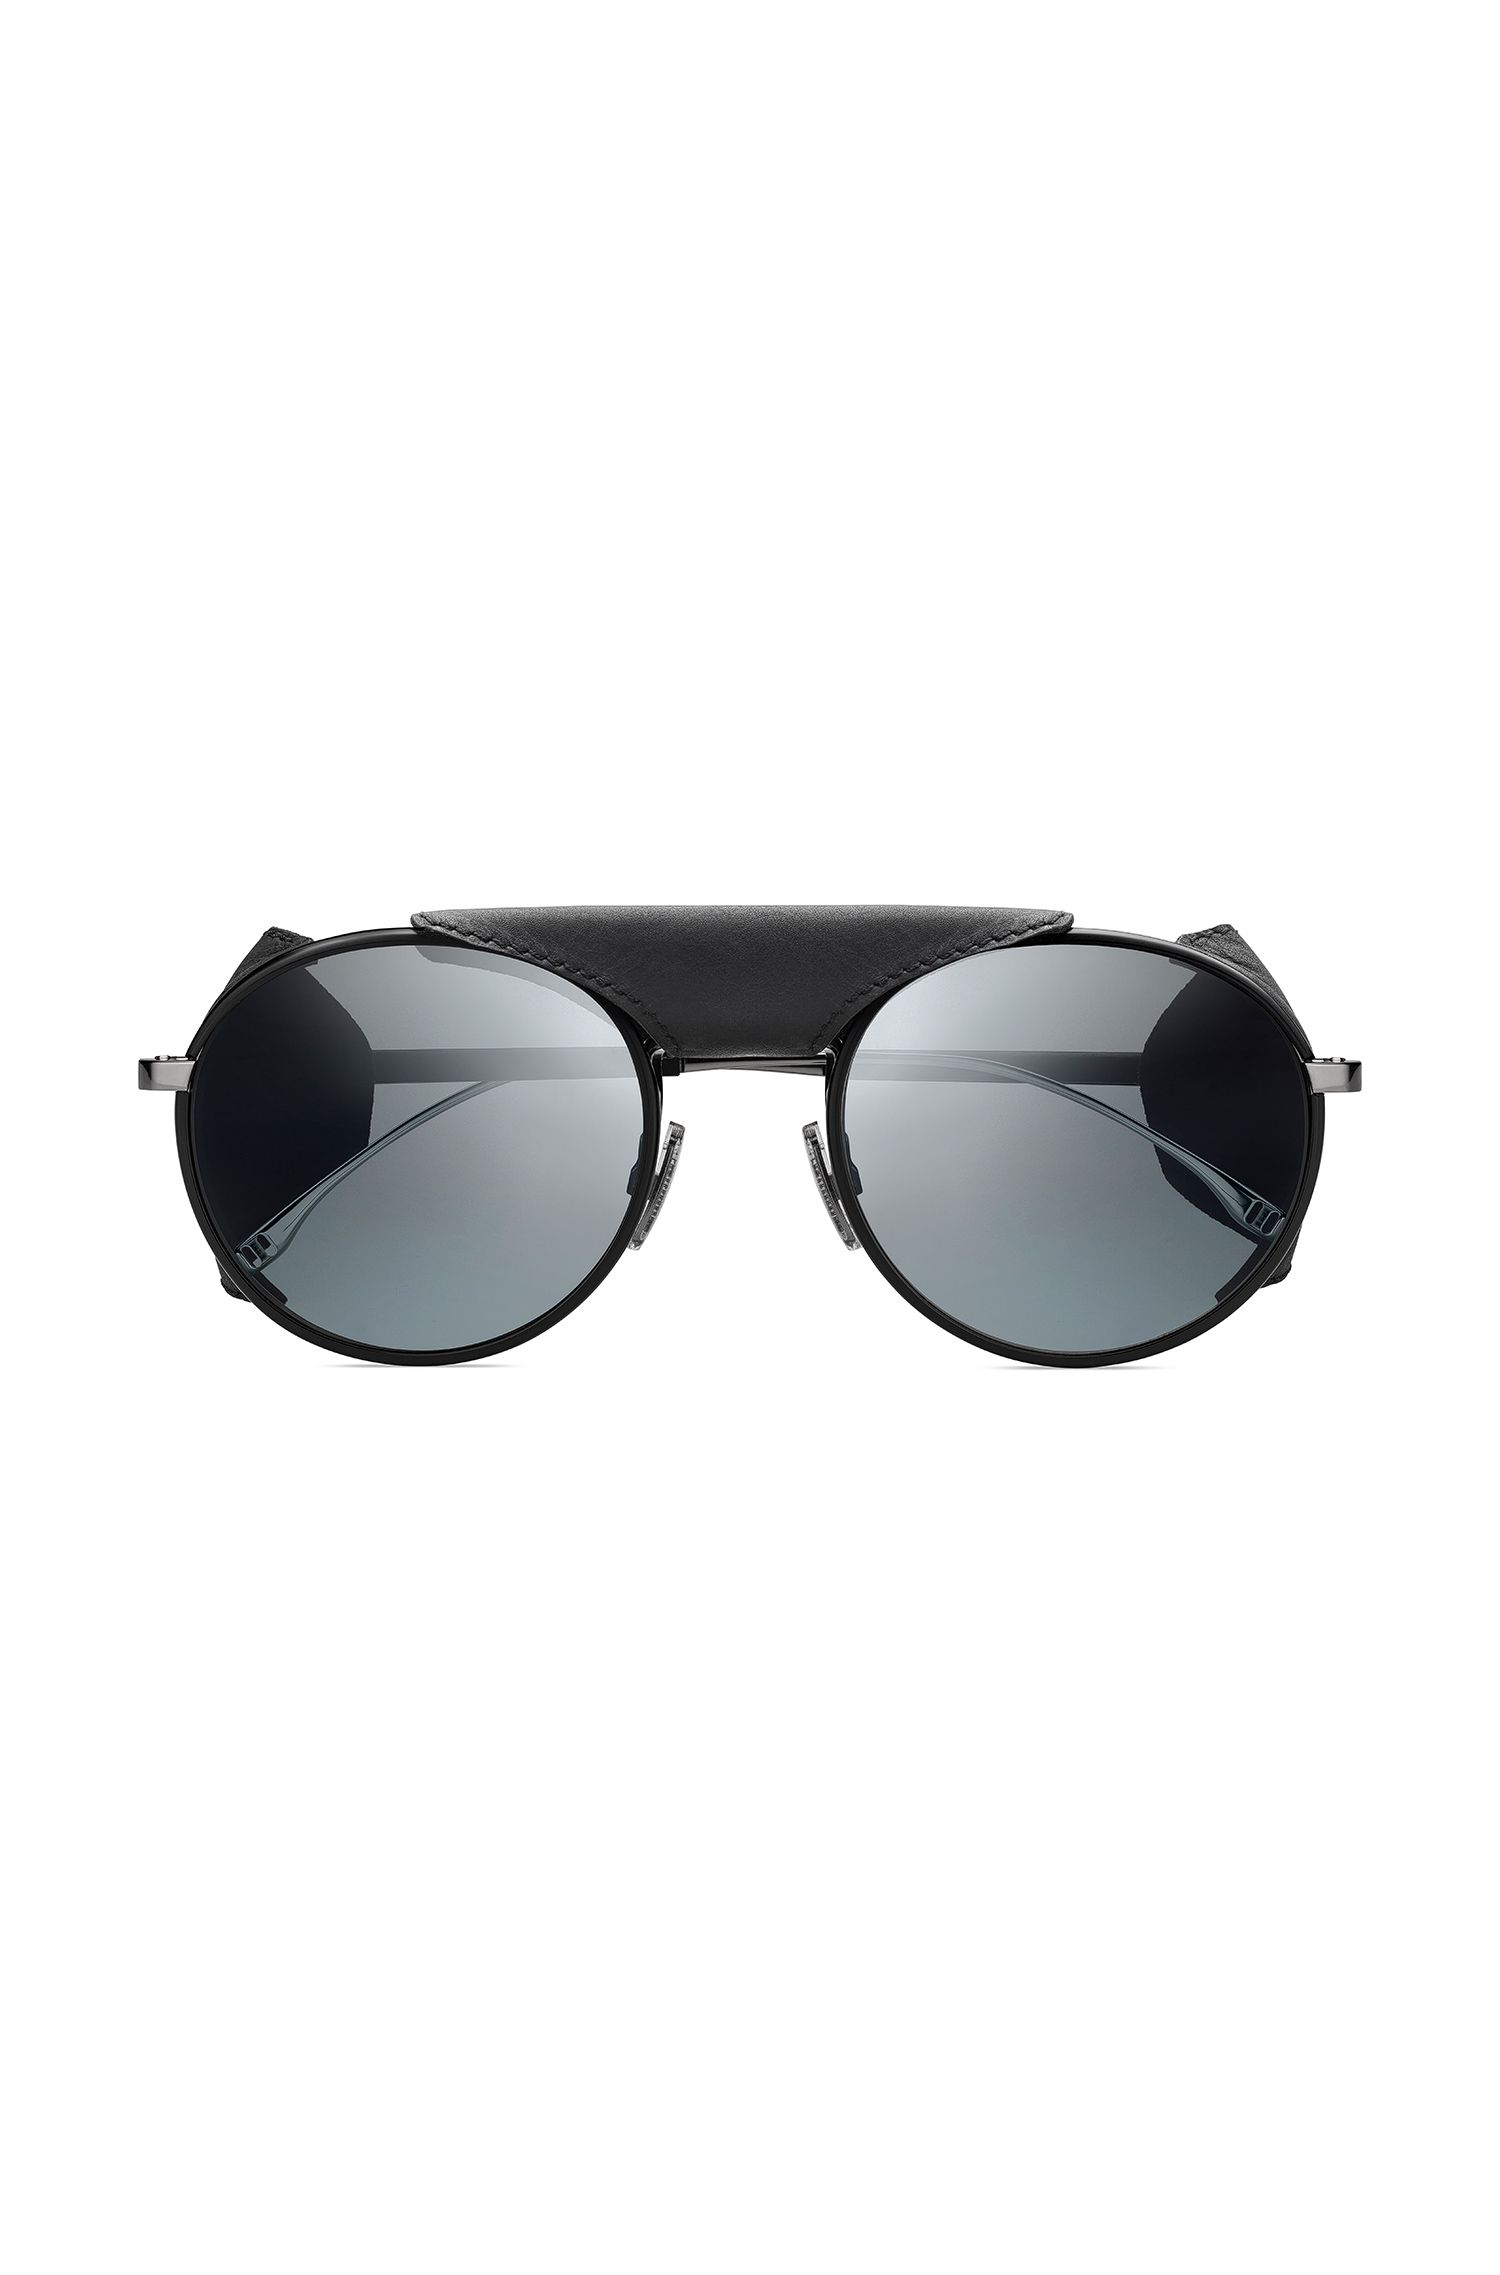 Limited Edition Mountain Traveler Sunglasses | BOSS 0866/N/S